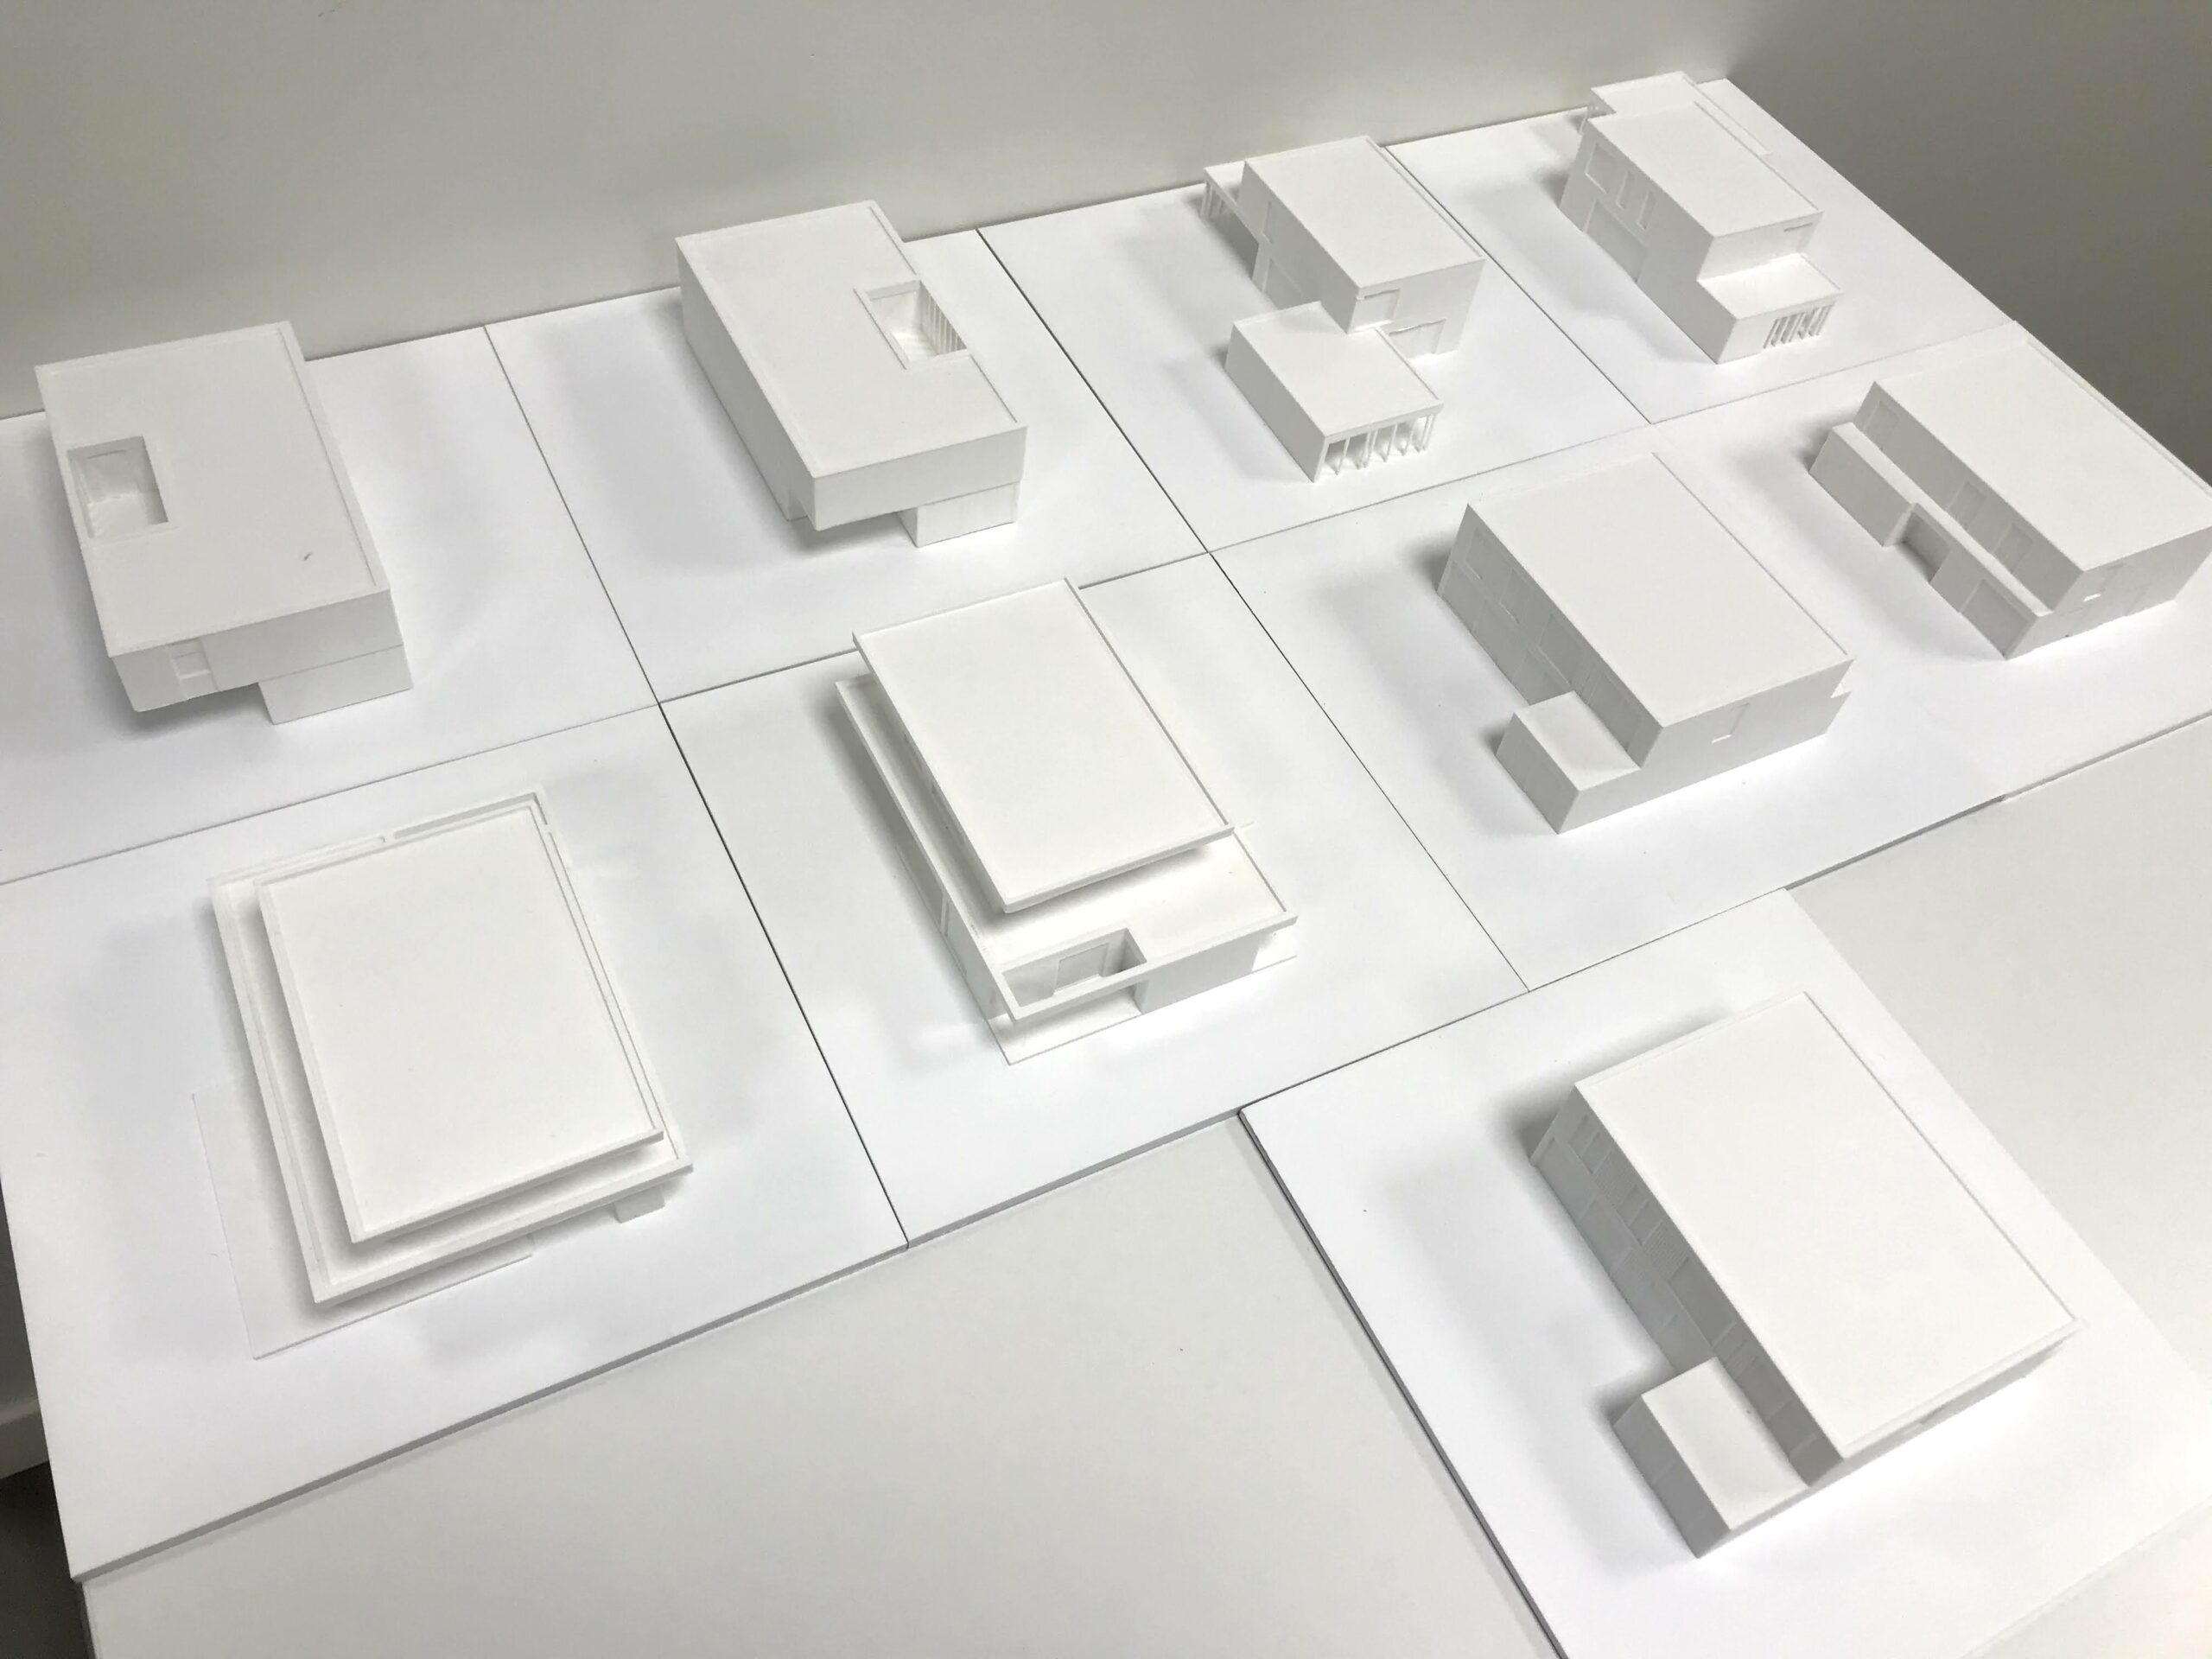 Maquette voor architect Hansi Ombregt door Formando